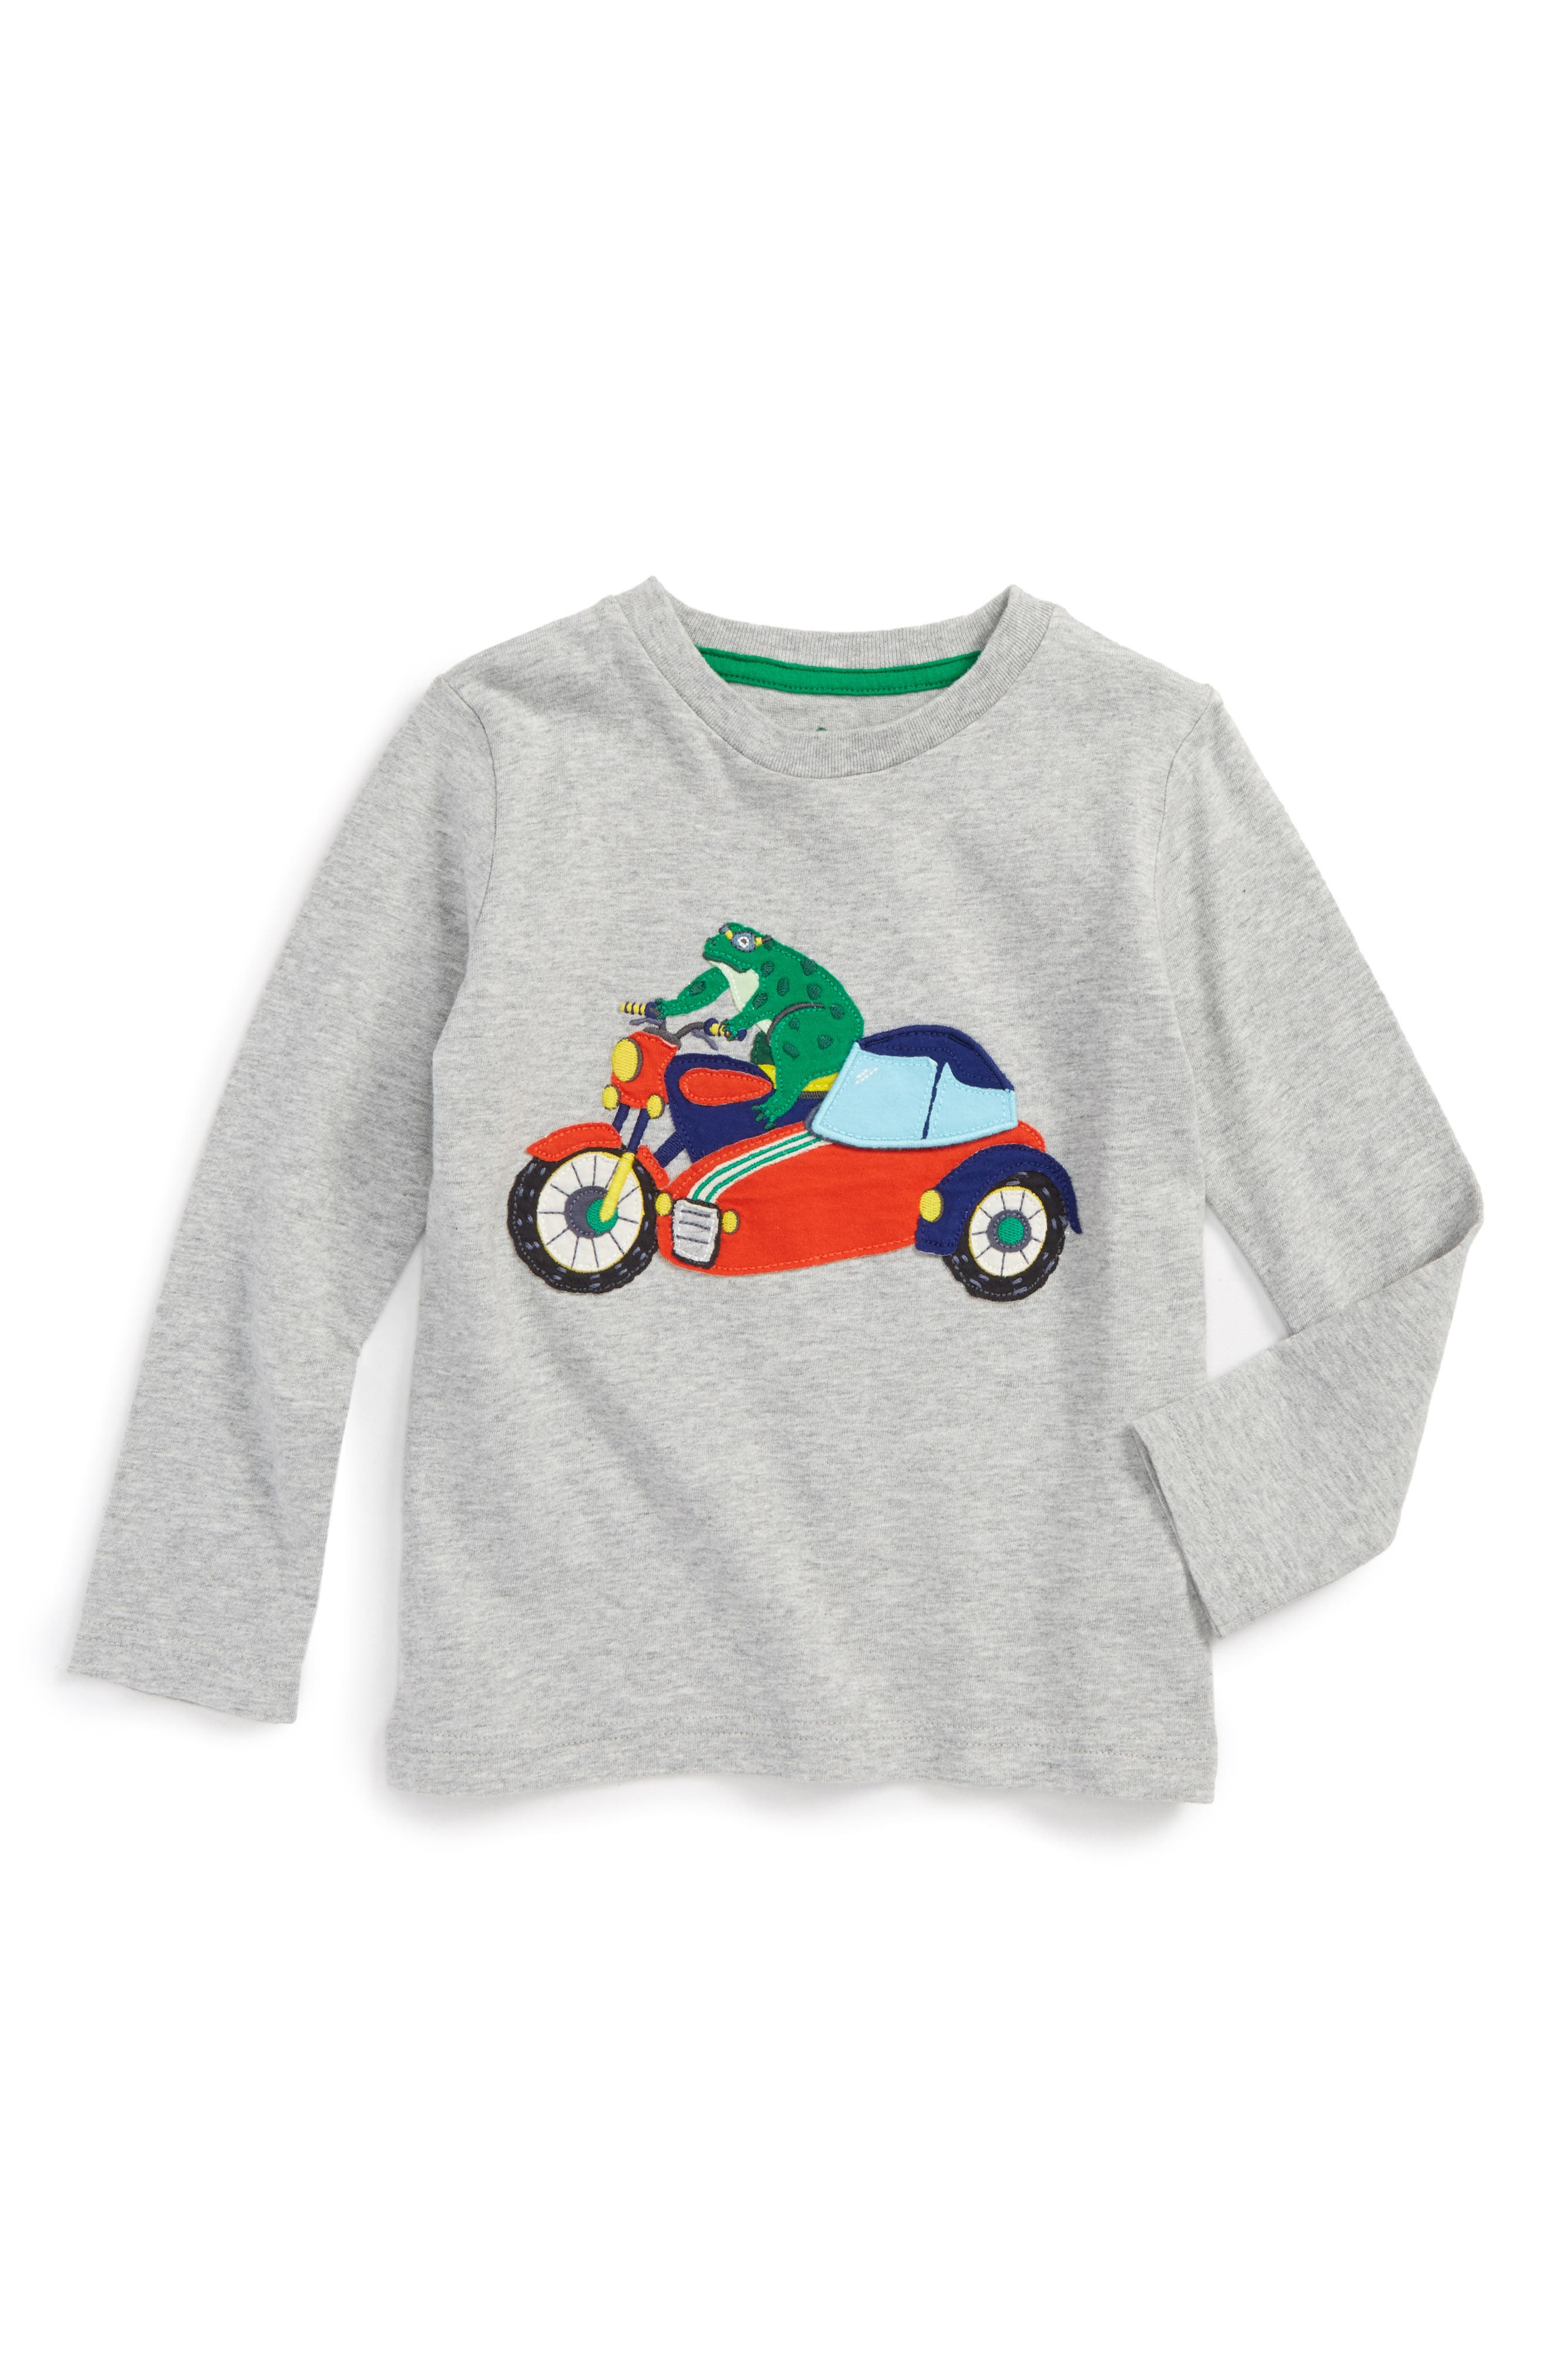 Alternate Image 1 Selected - Mini Boden Novelty Vehicle T-Shirt (Toddler Boys, Little Boys & Big Boys)